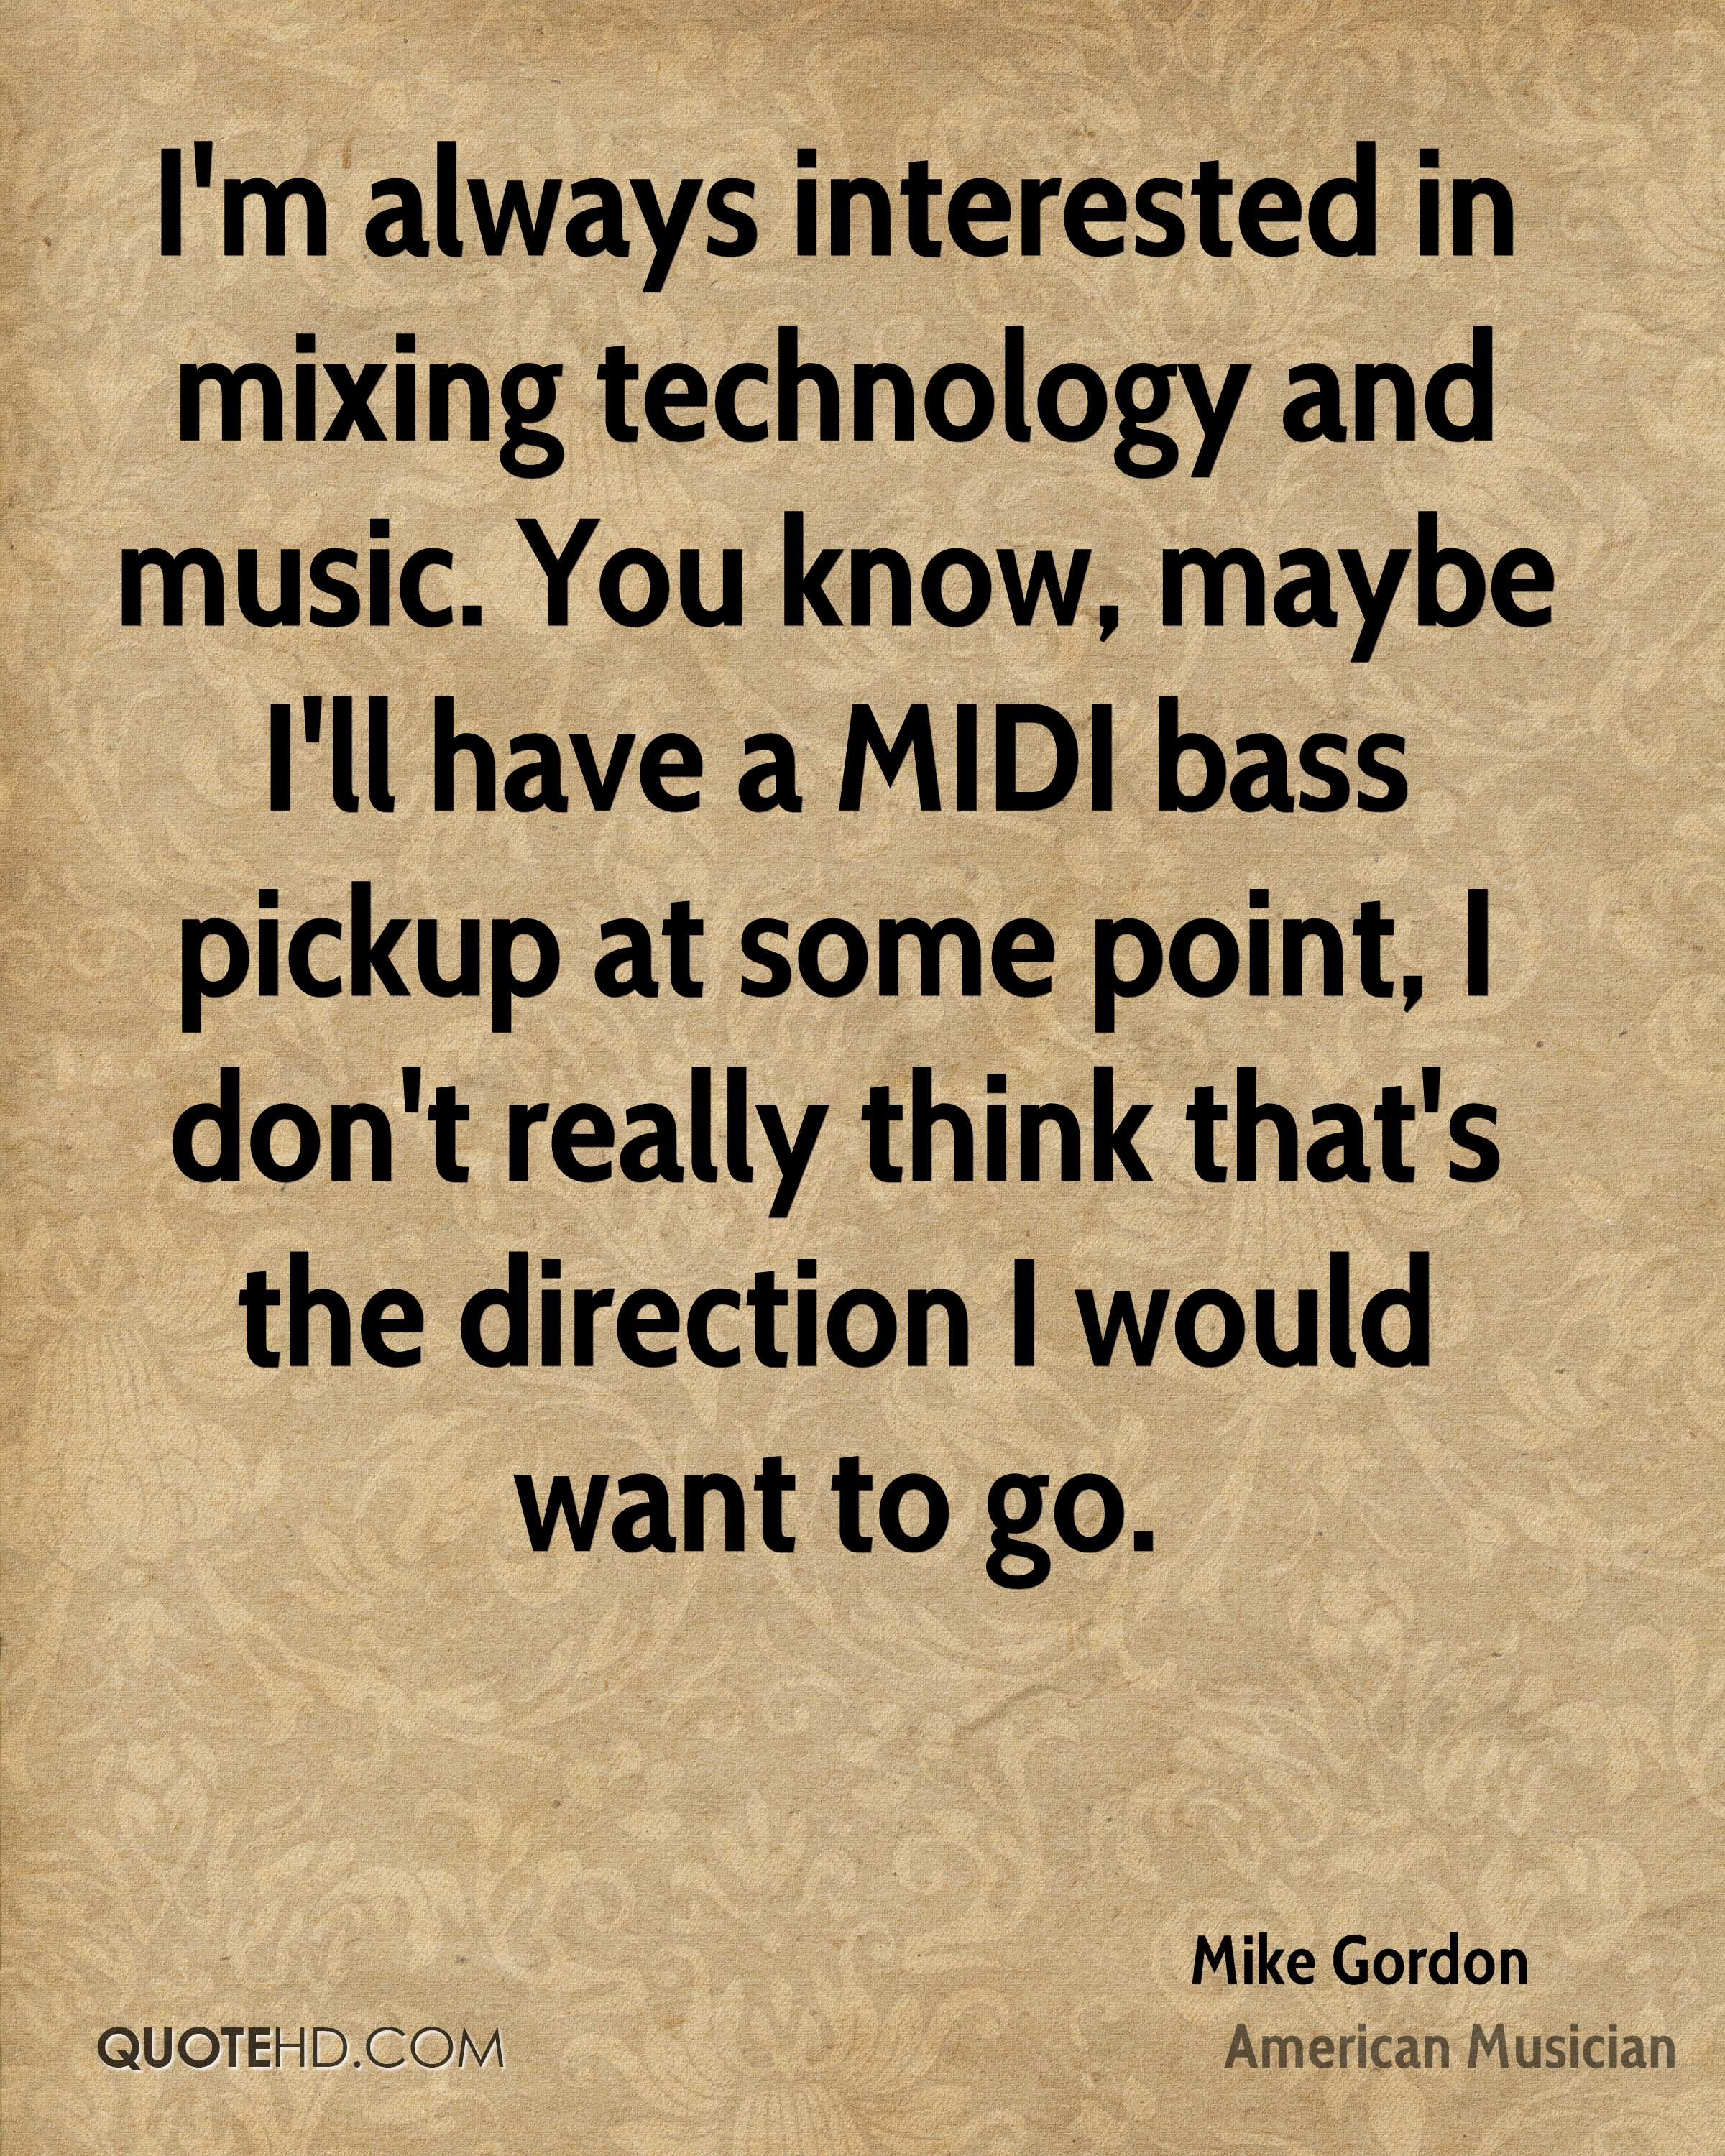 I'm always interested in mixing technology and music. You know, maybe I'll have a MIDI bass pickup at some point, I don't really think that's the direction I would want to go.